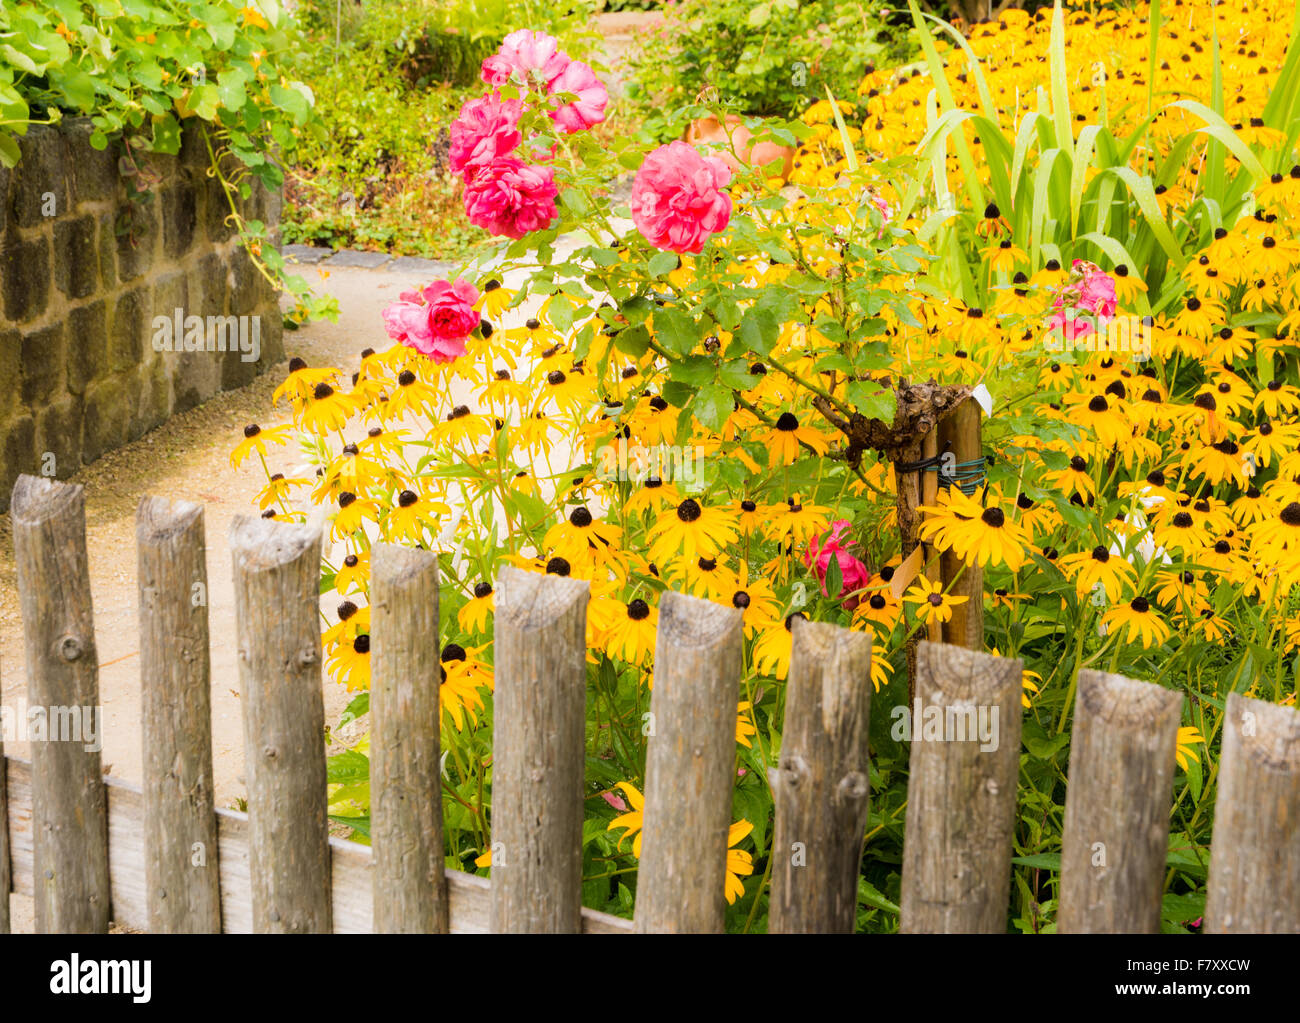 Flower garden behind a wooden fence - Stock Image